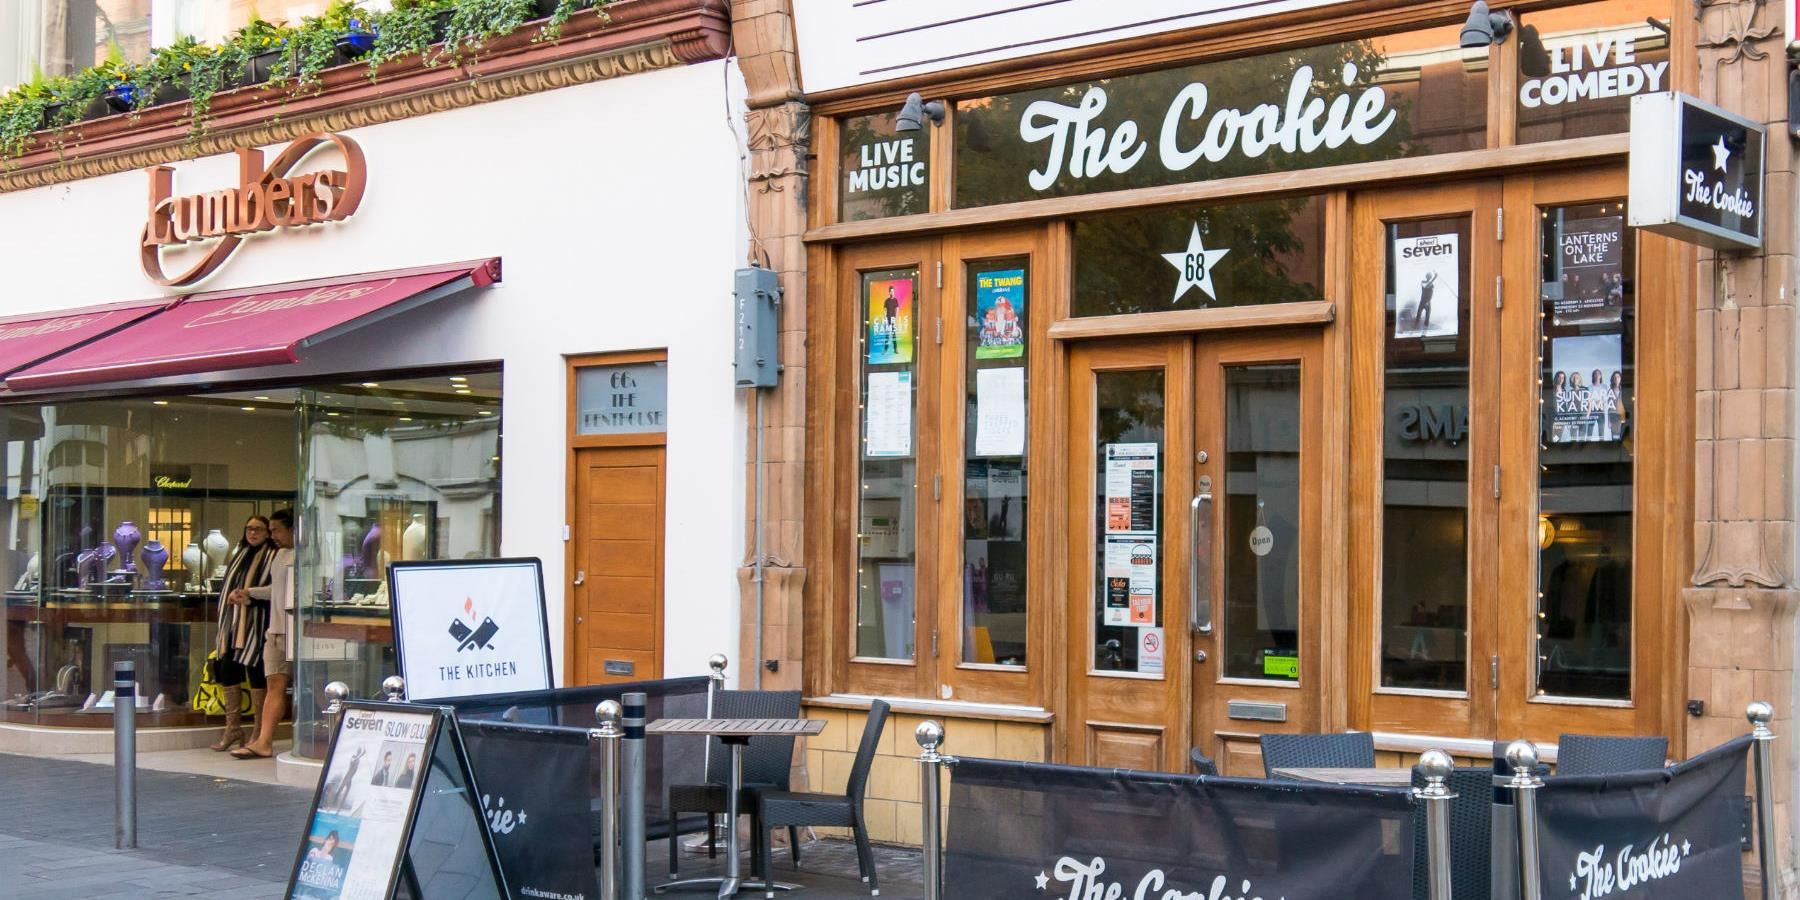 The Cookie, Bar, Restaurant and Venue - Eating and Drinking in Leicester